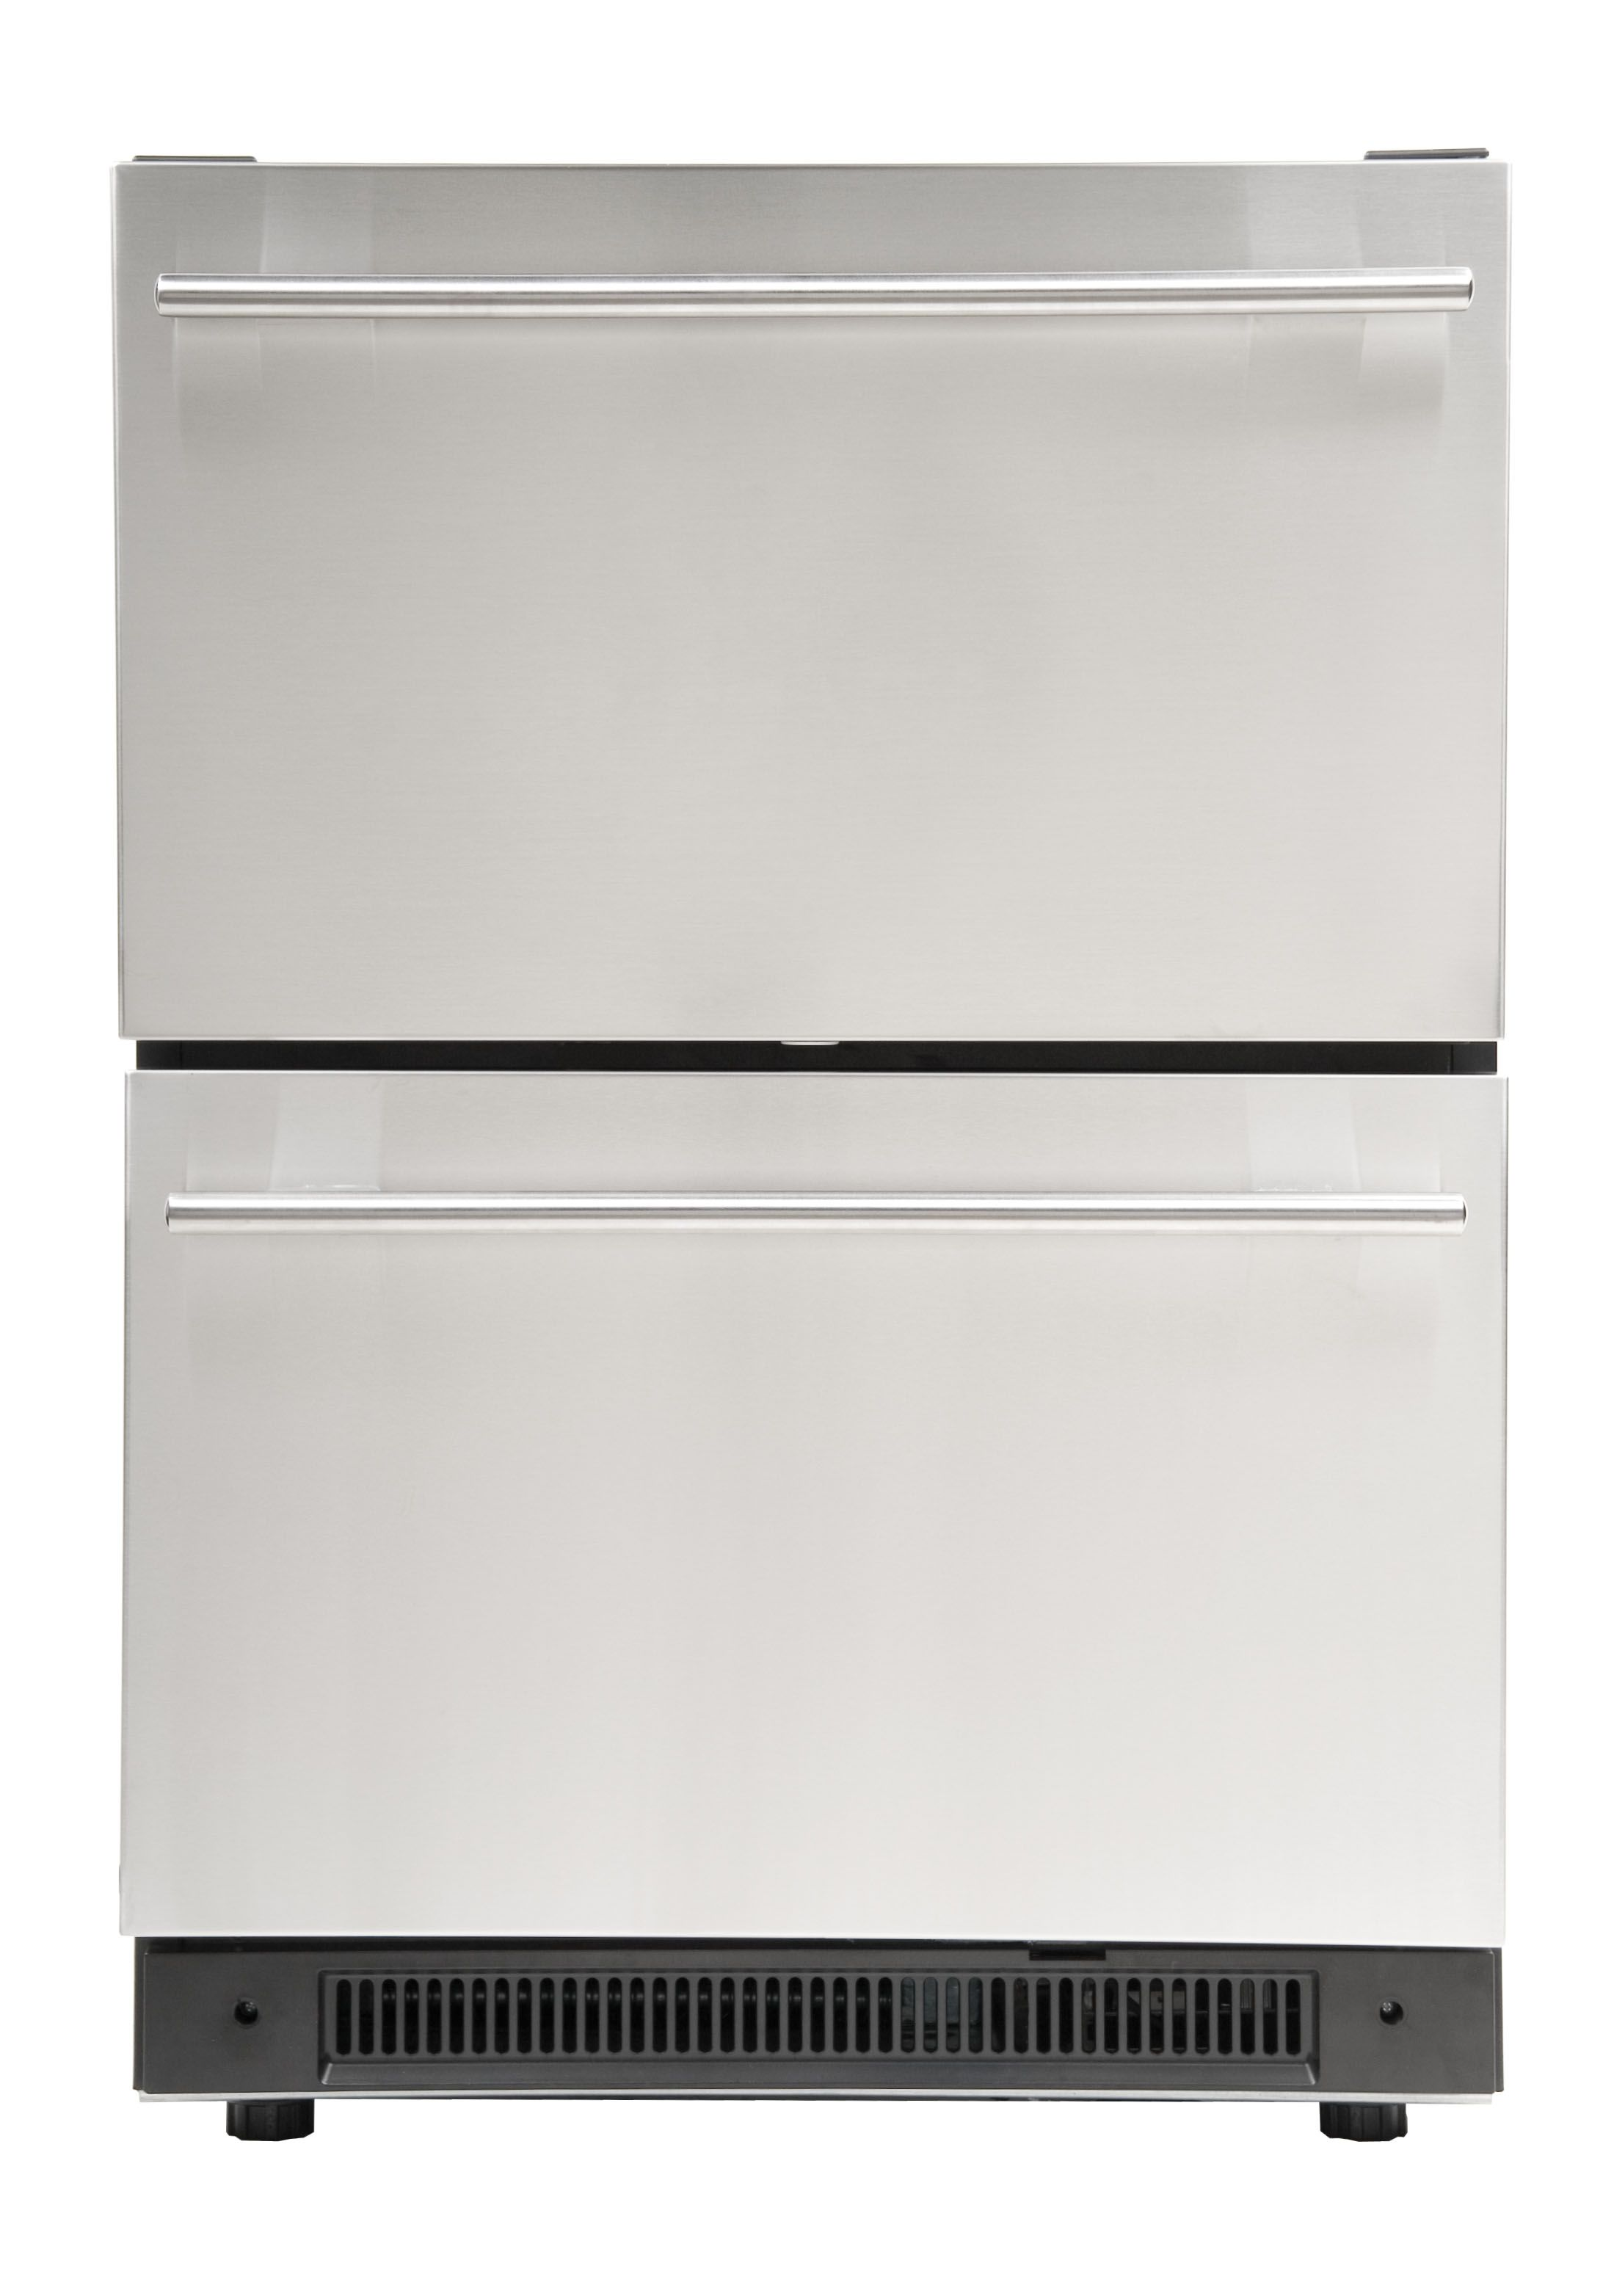 Pin By Ngani On Tiny Kitchens Refrigerator Drawers Outdoor Kitchen Appliances Refrigerator